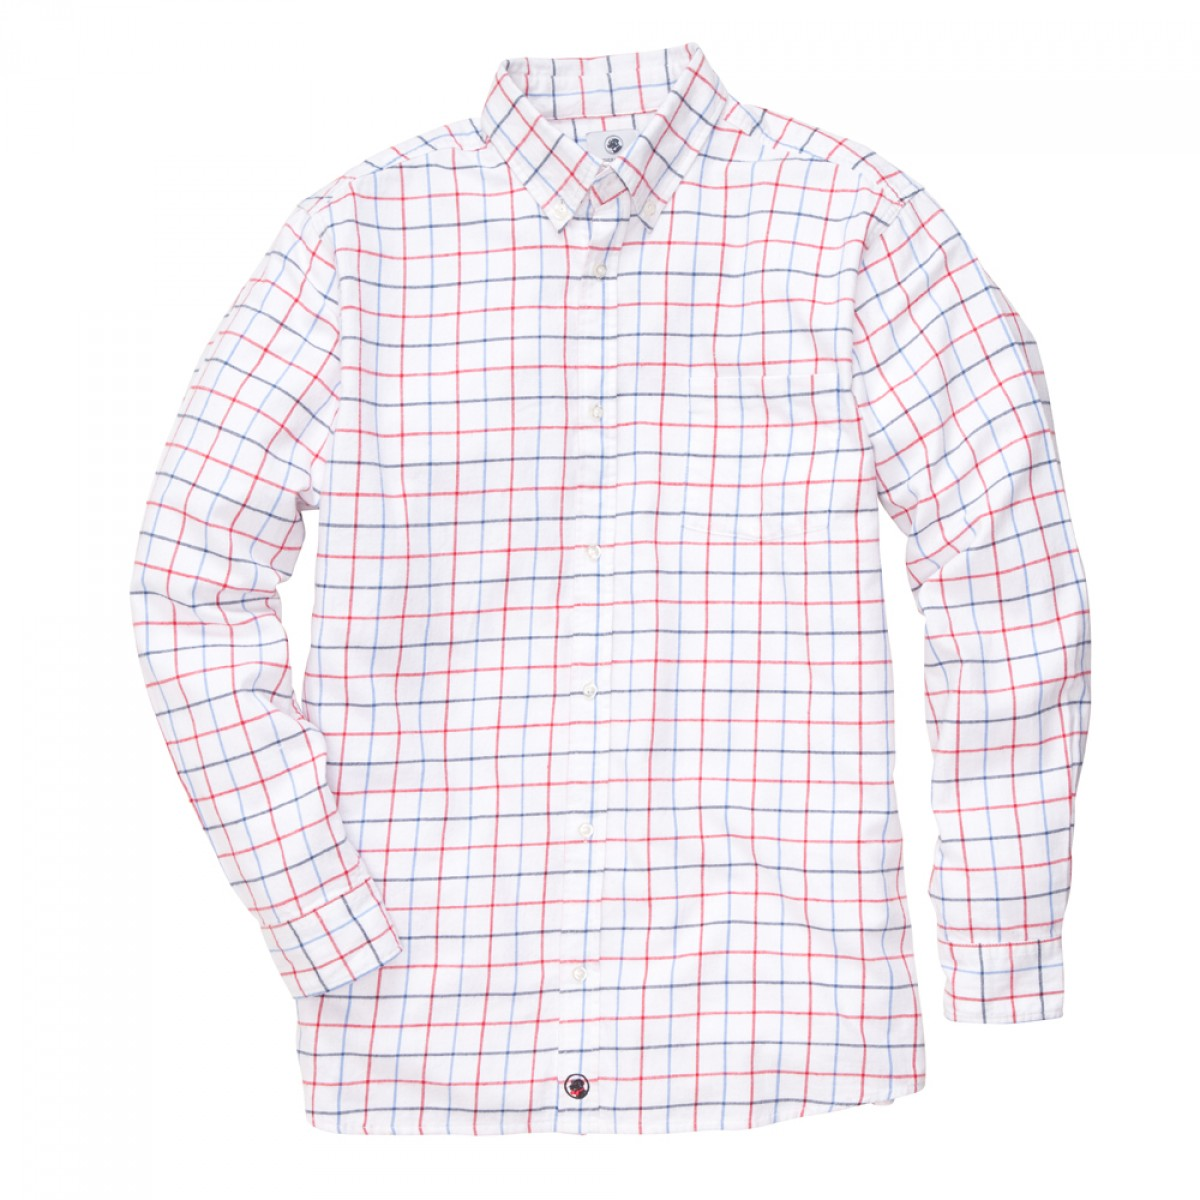 Tattersall Shirt - Red/White/Blue